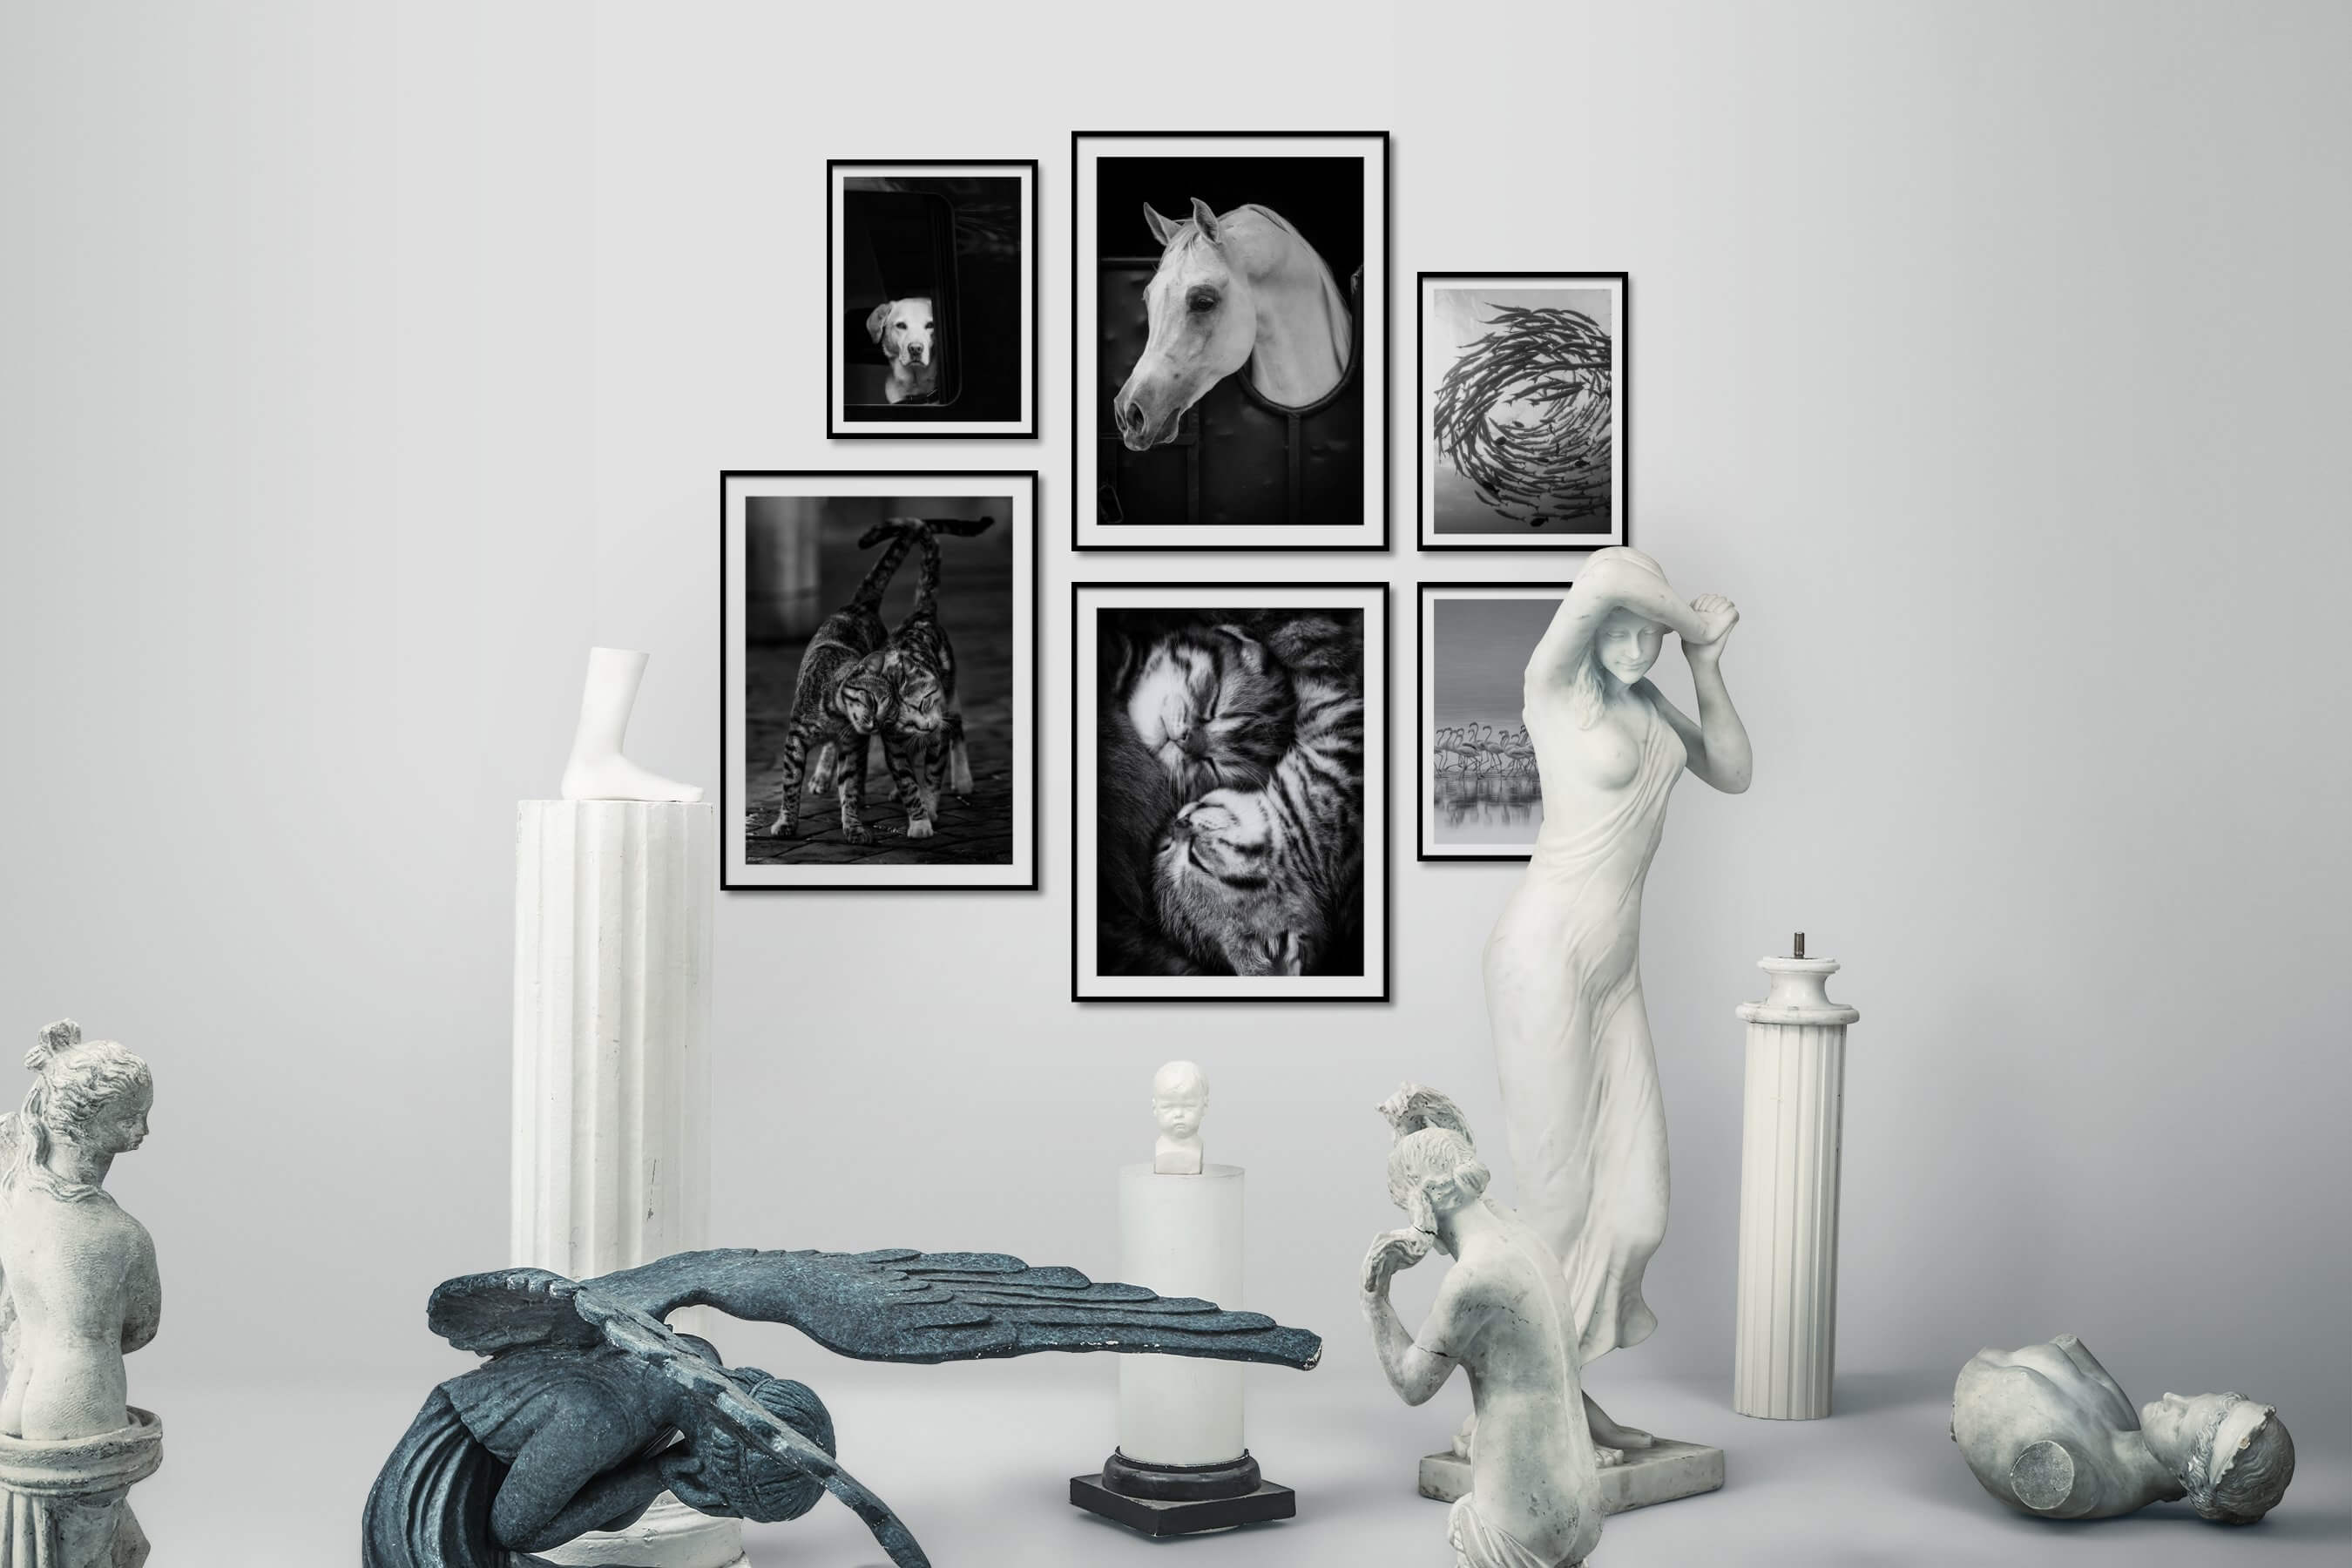 Gallery wall idea with six framed pictures arranged on a wall depicting Black & White and Animals